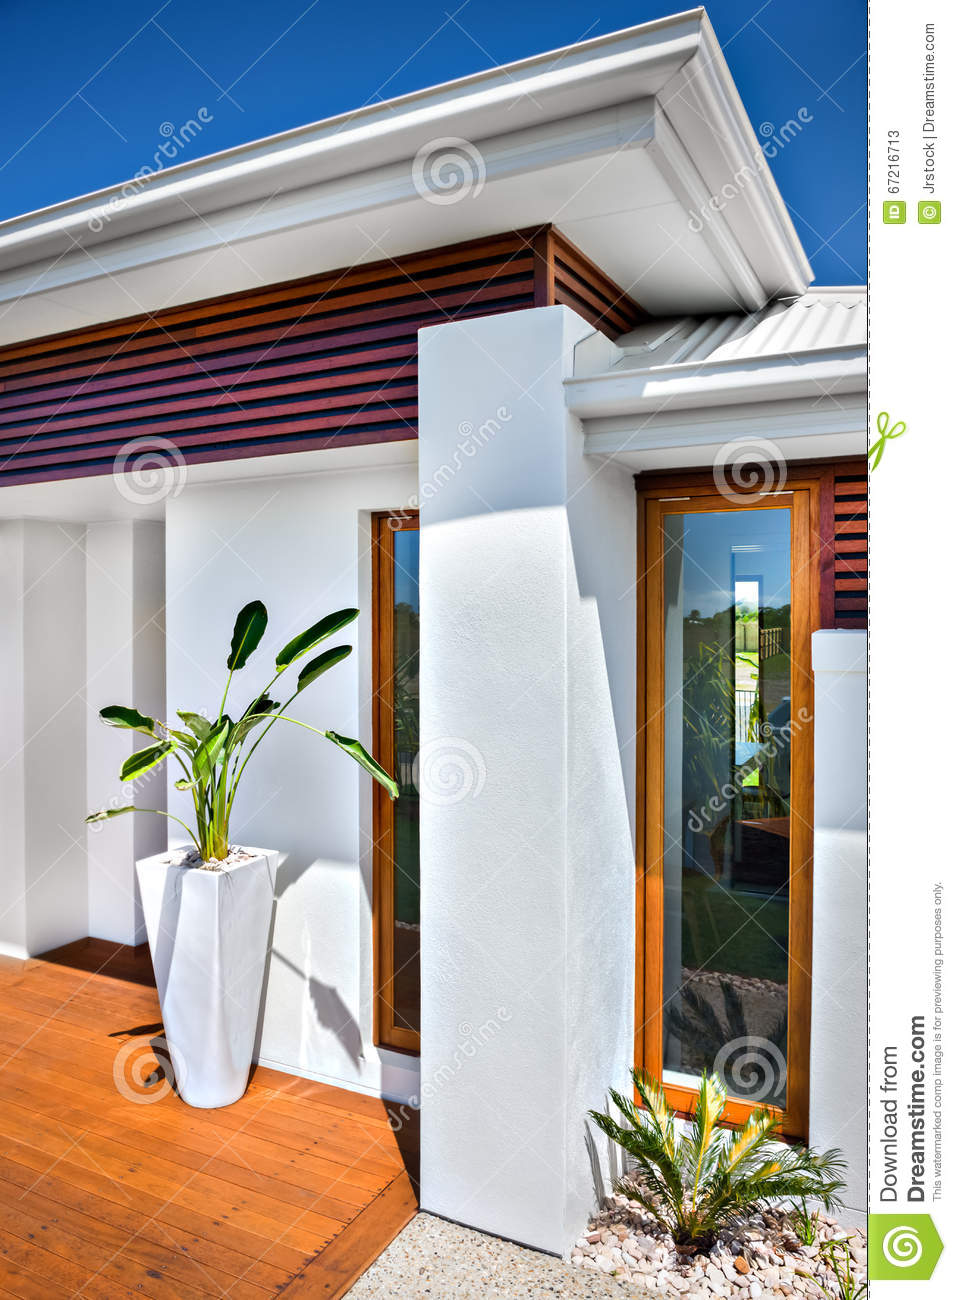 Front View Of Modern House nd Blue Sky Stock Photo - Image ... - ^